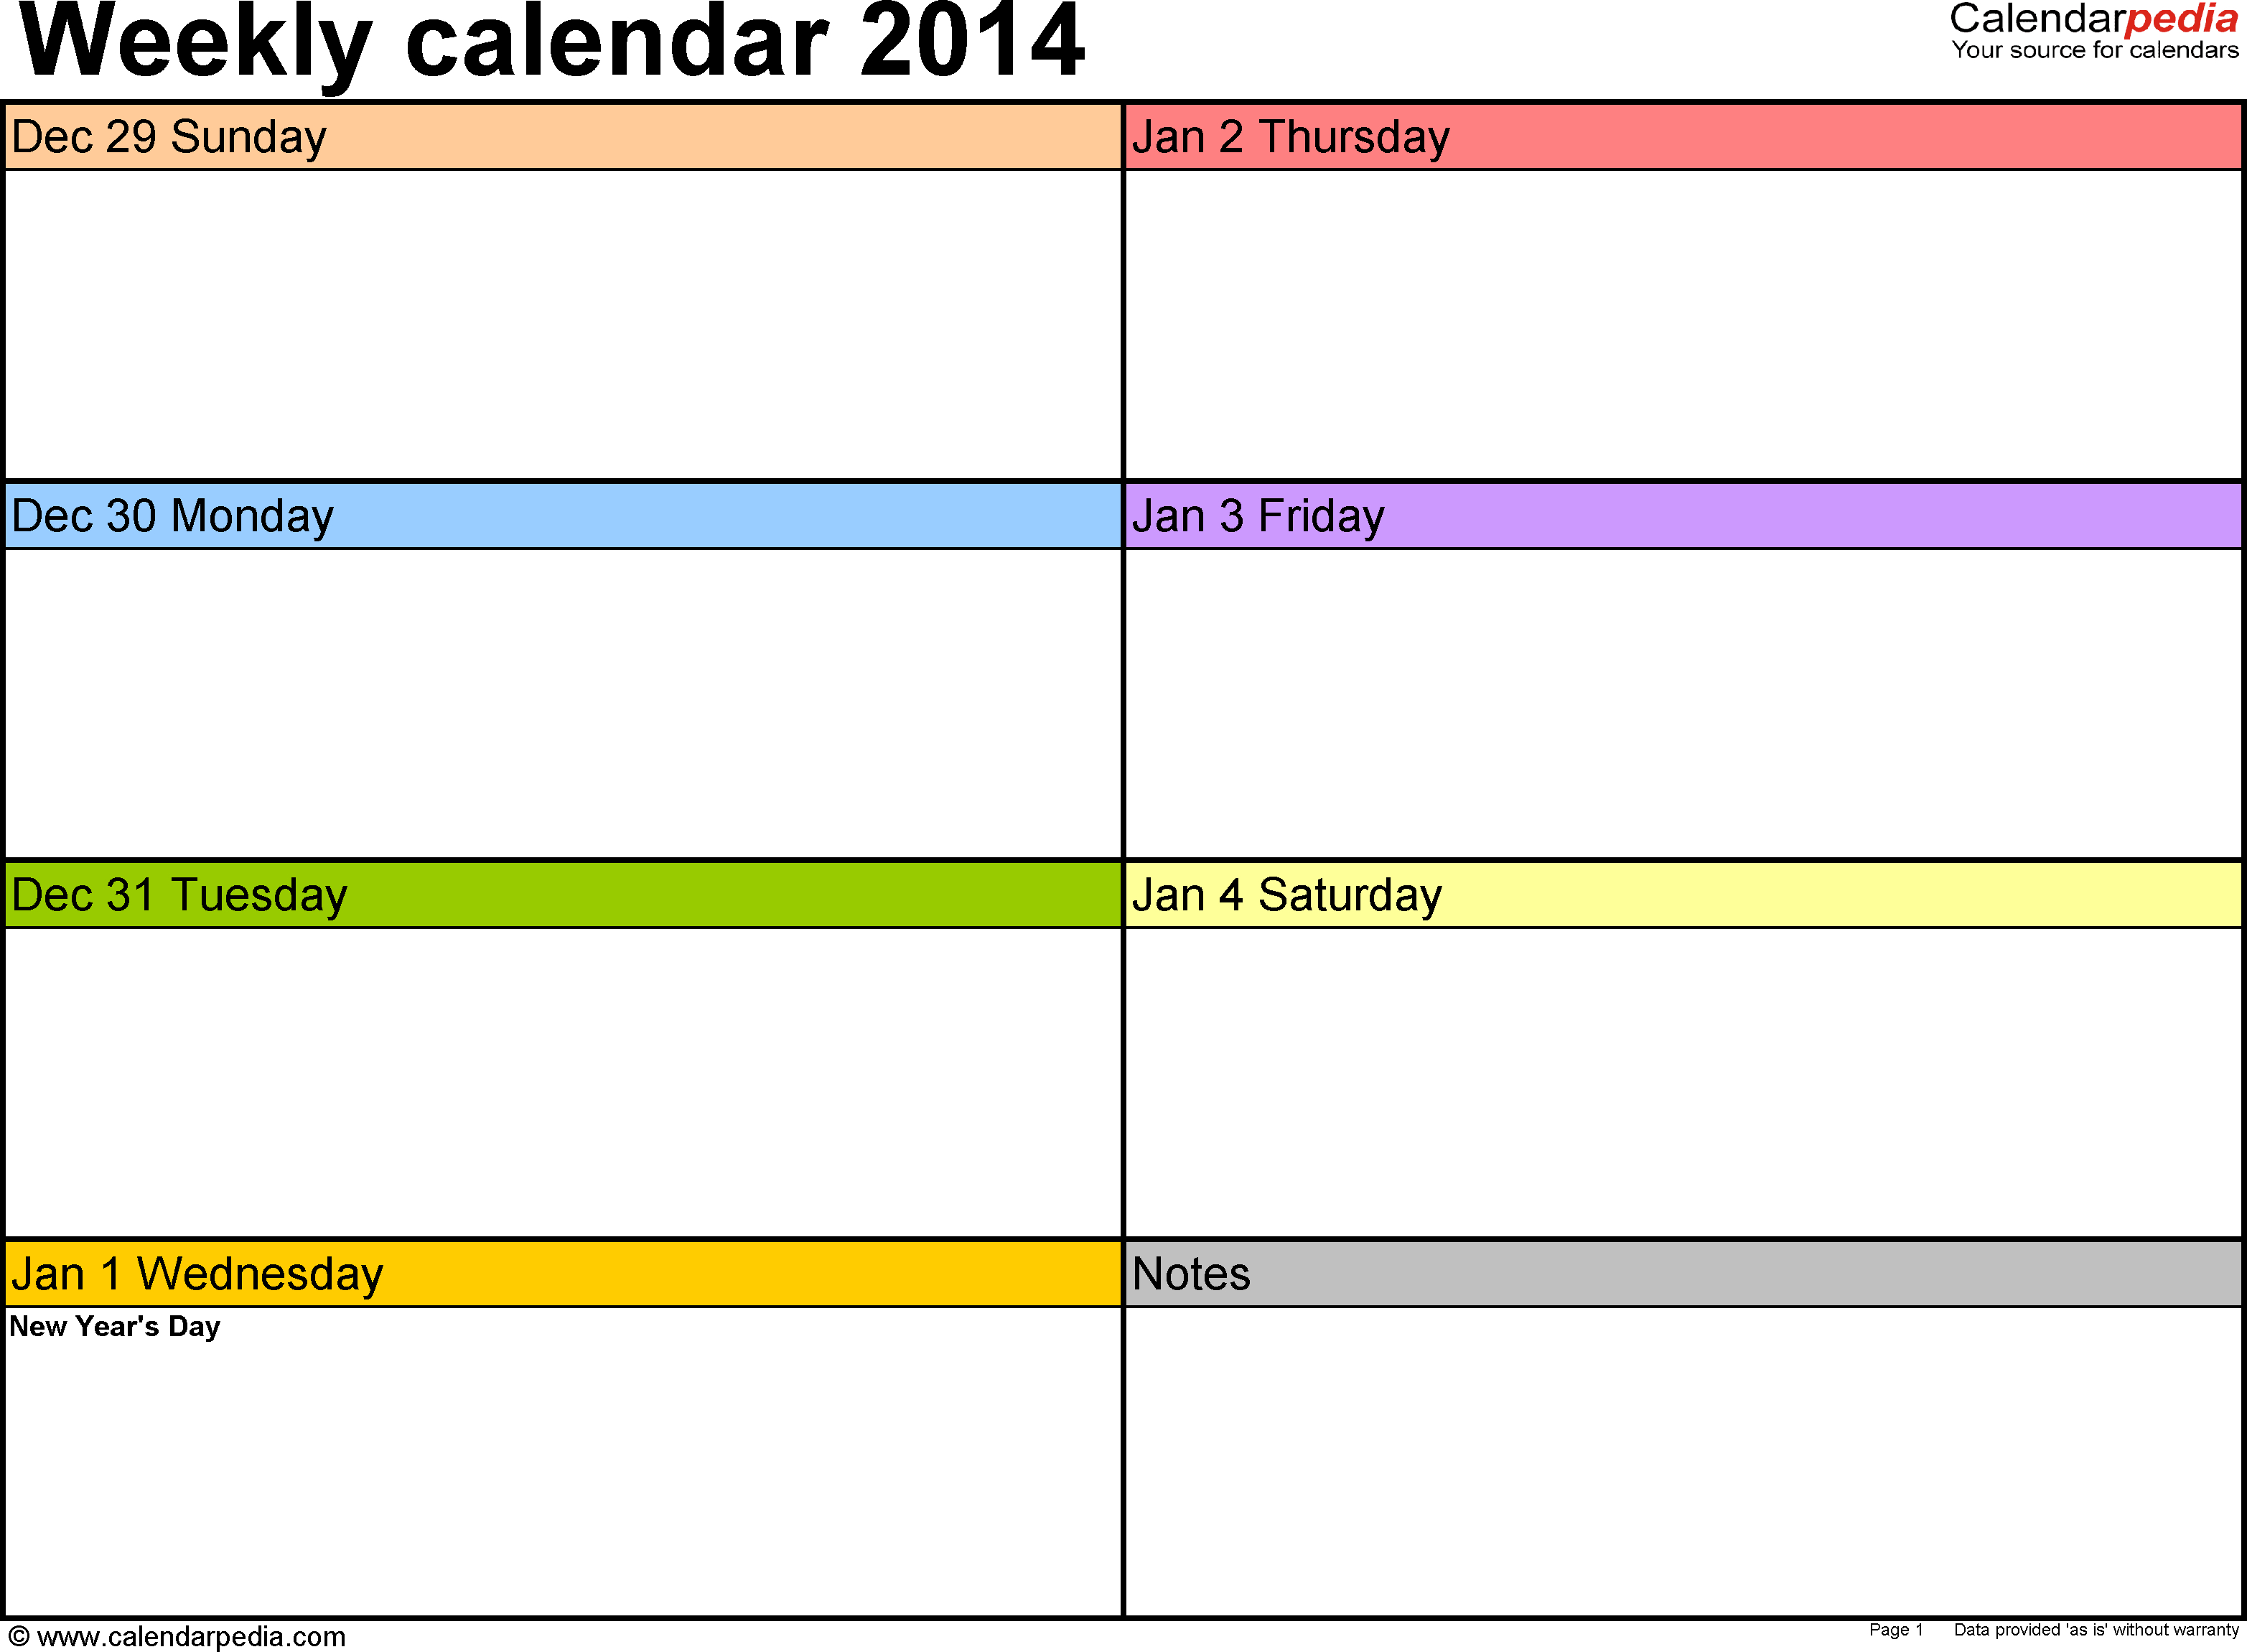 Weekly Calendar 2014 For Word - 4 Free Printable Templates pertaining to Monthly Planner Template For Children